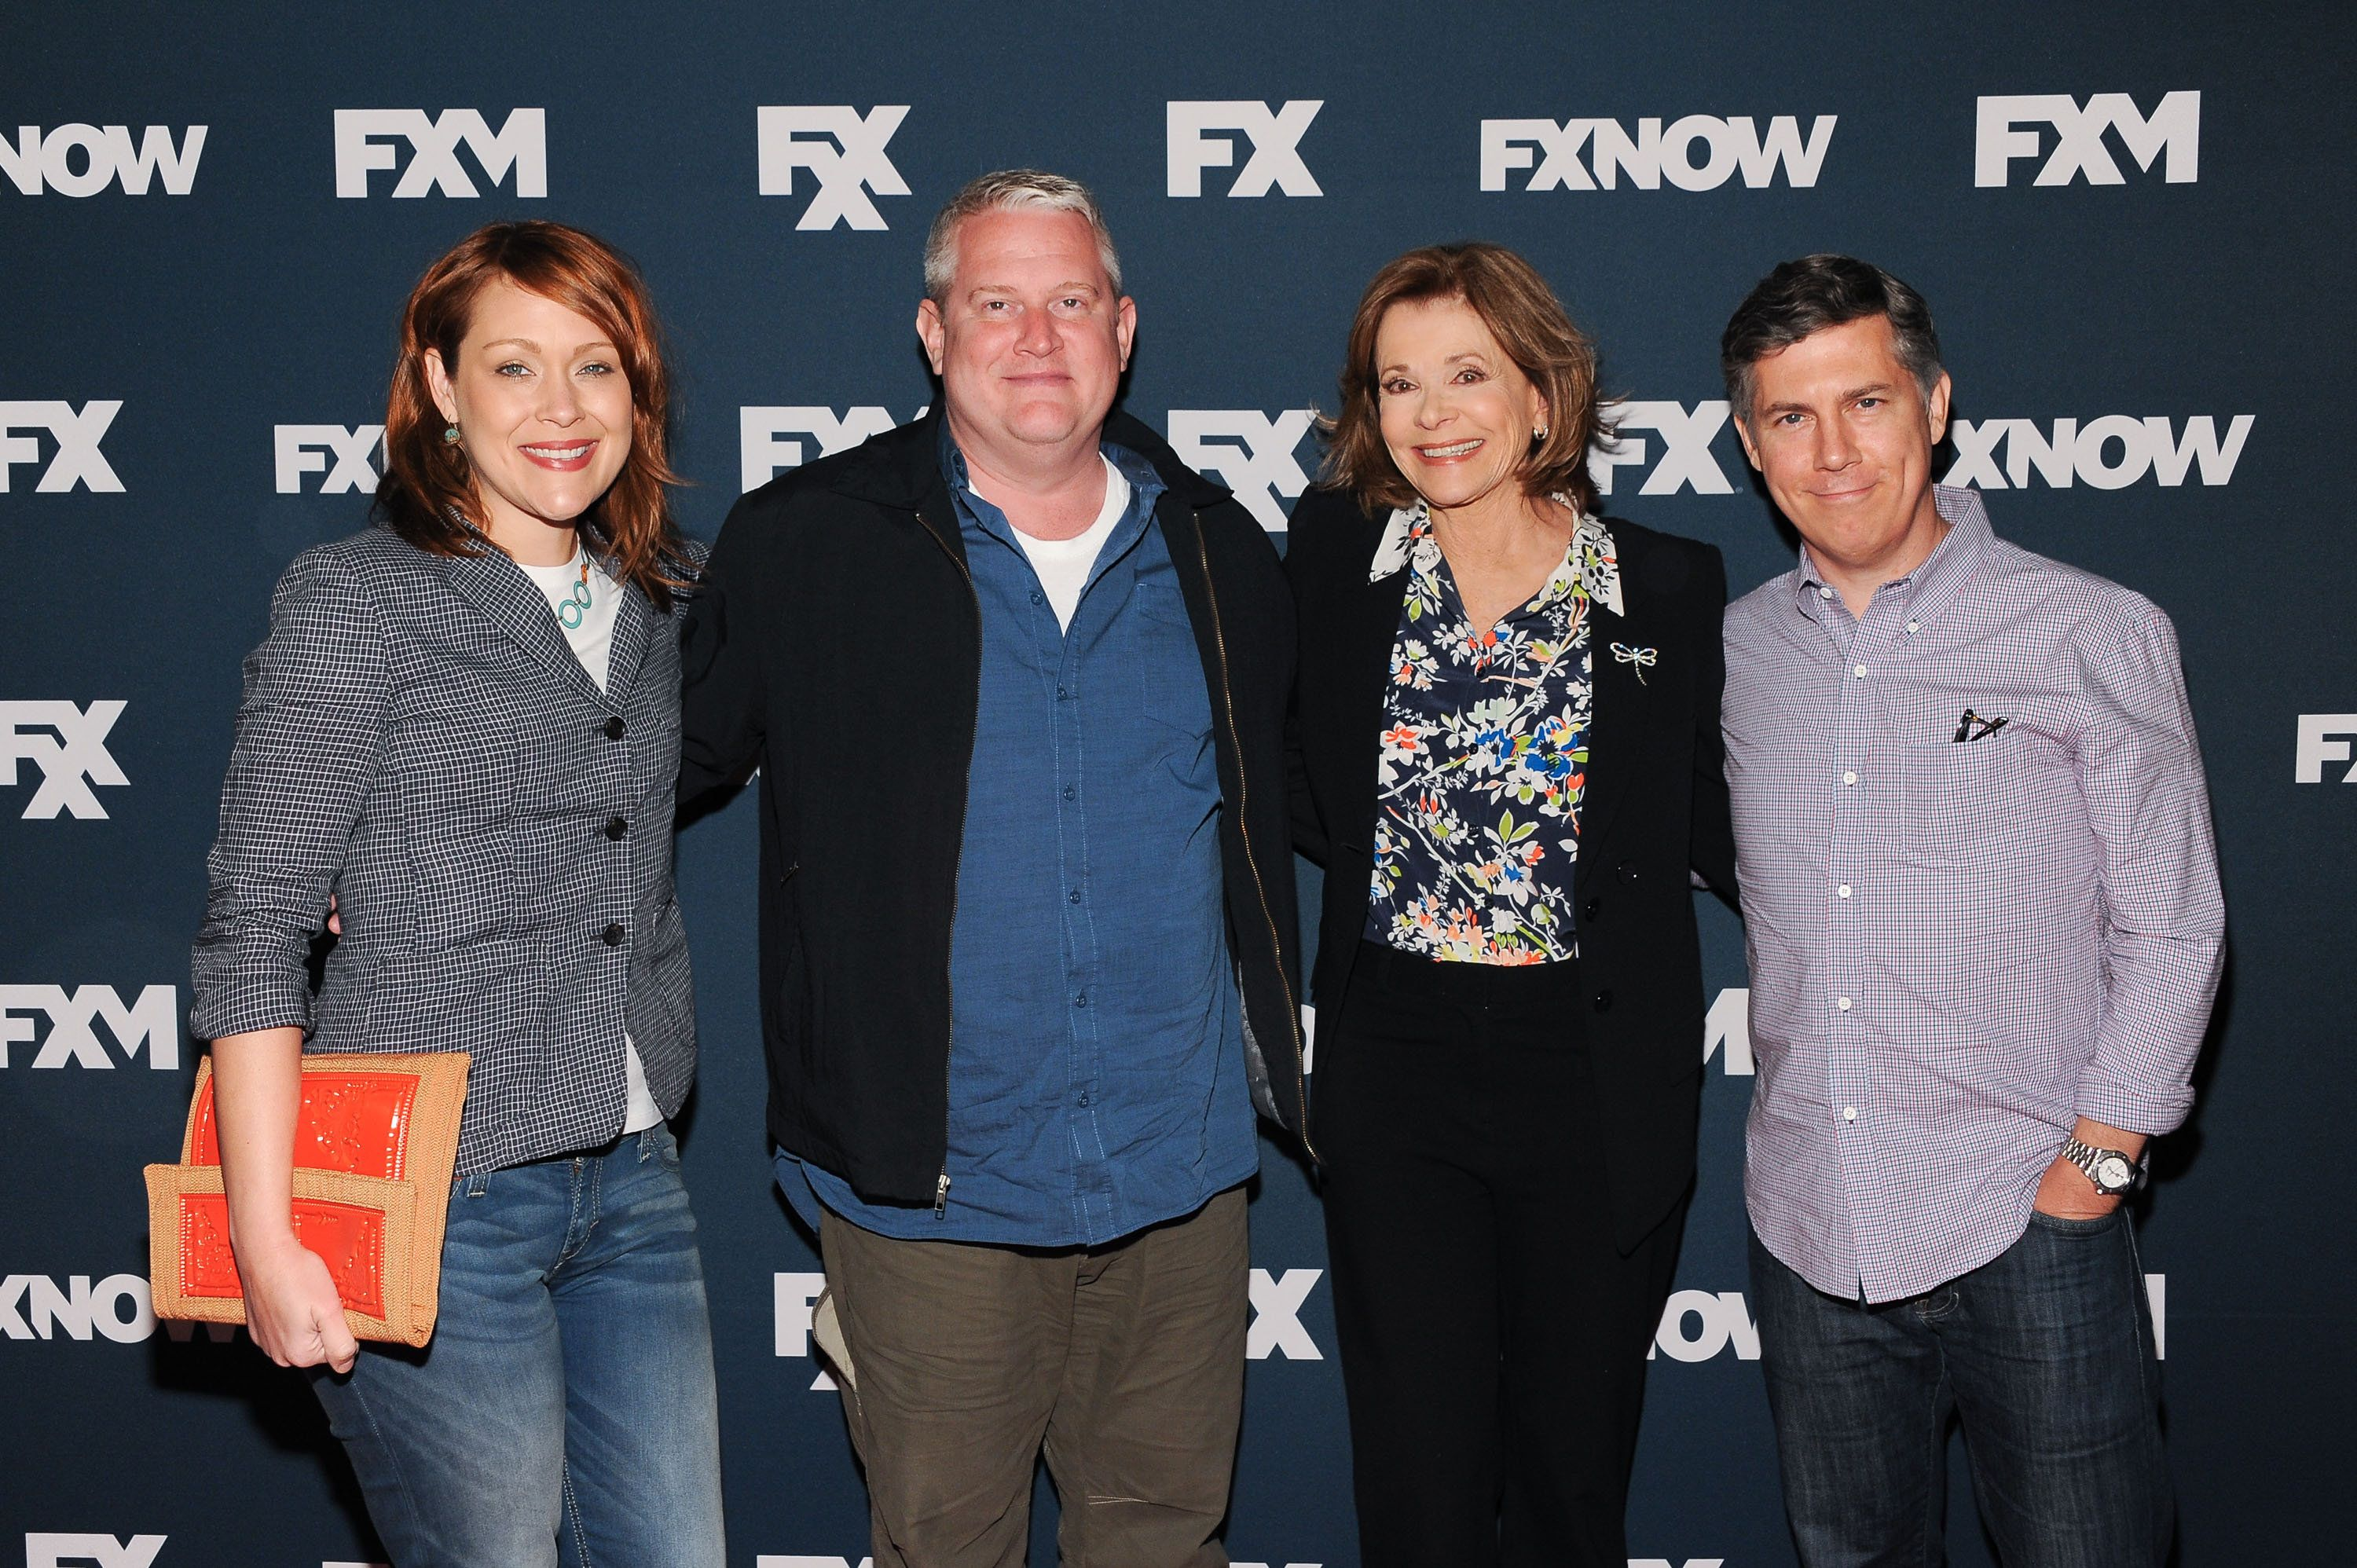 NEW YORK, NY - APRIL 22:  (L-R) Amber Nash, Adam Reed, Jessica Walter, and Chris Parnell attend the 2015 FX Bowling Party at Lucky Strike on April 22, 2015 in New York City.  (Photo by D Dipasupil/Getty Images)